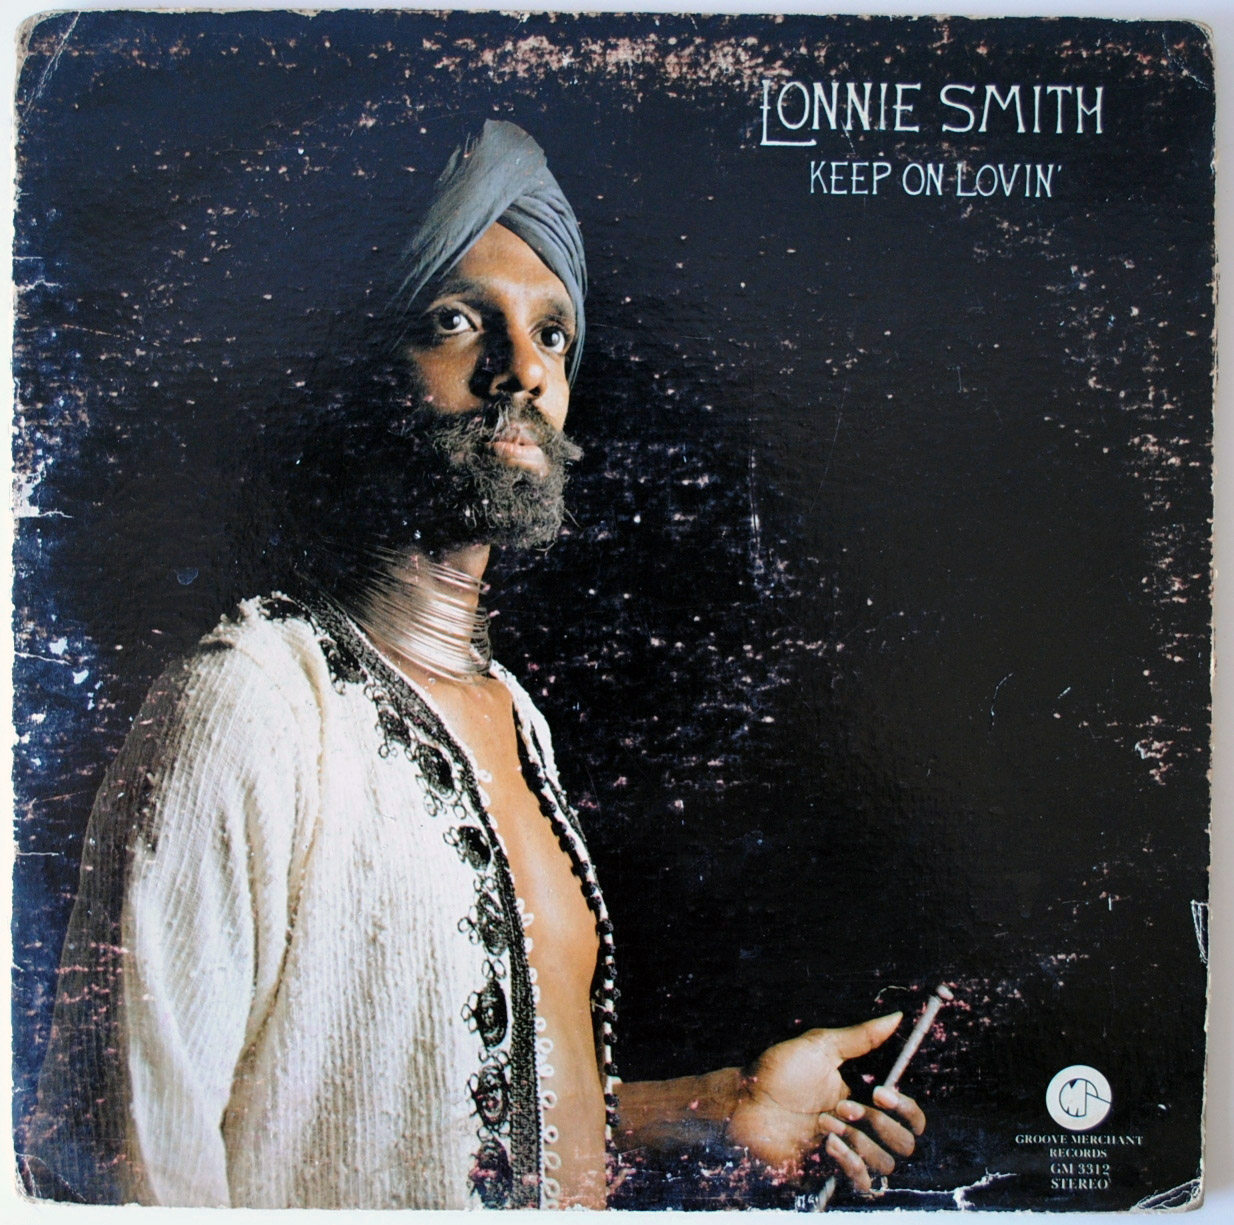 Lonnie Smith keep on lovin'